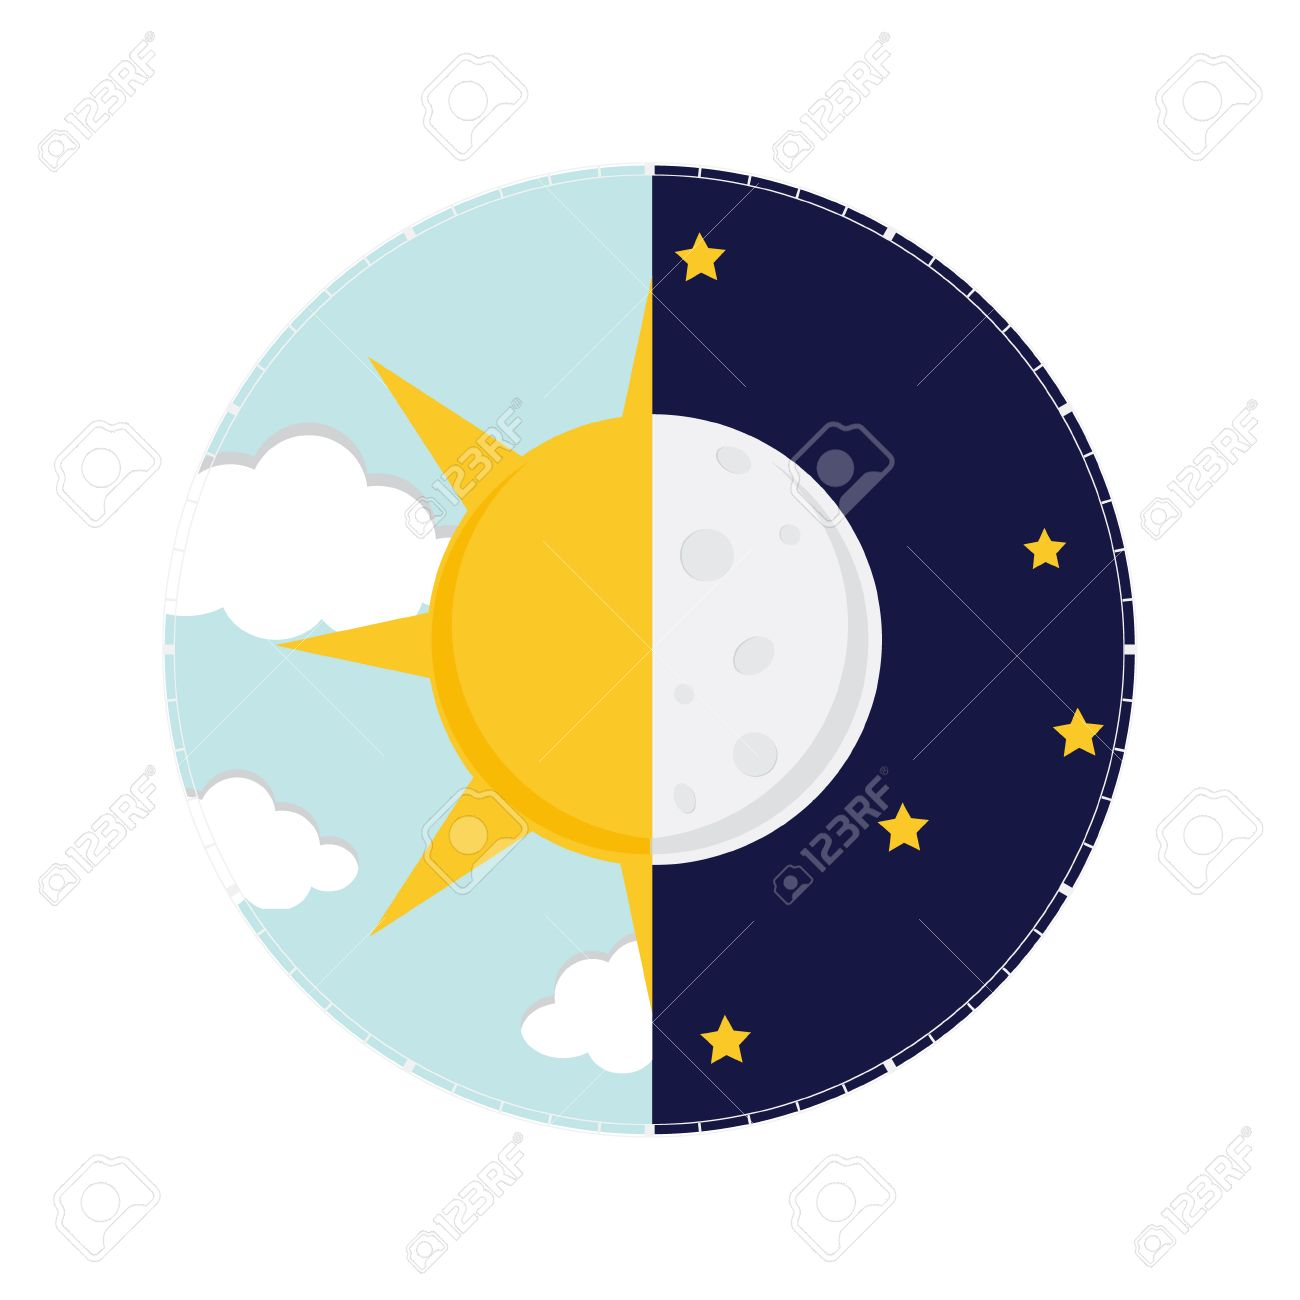 vector illustration of day and night day night concept sun rh 123rf com Sun and Moon Drawings Sun and Moon Outline